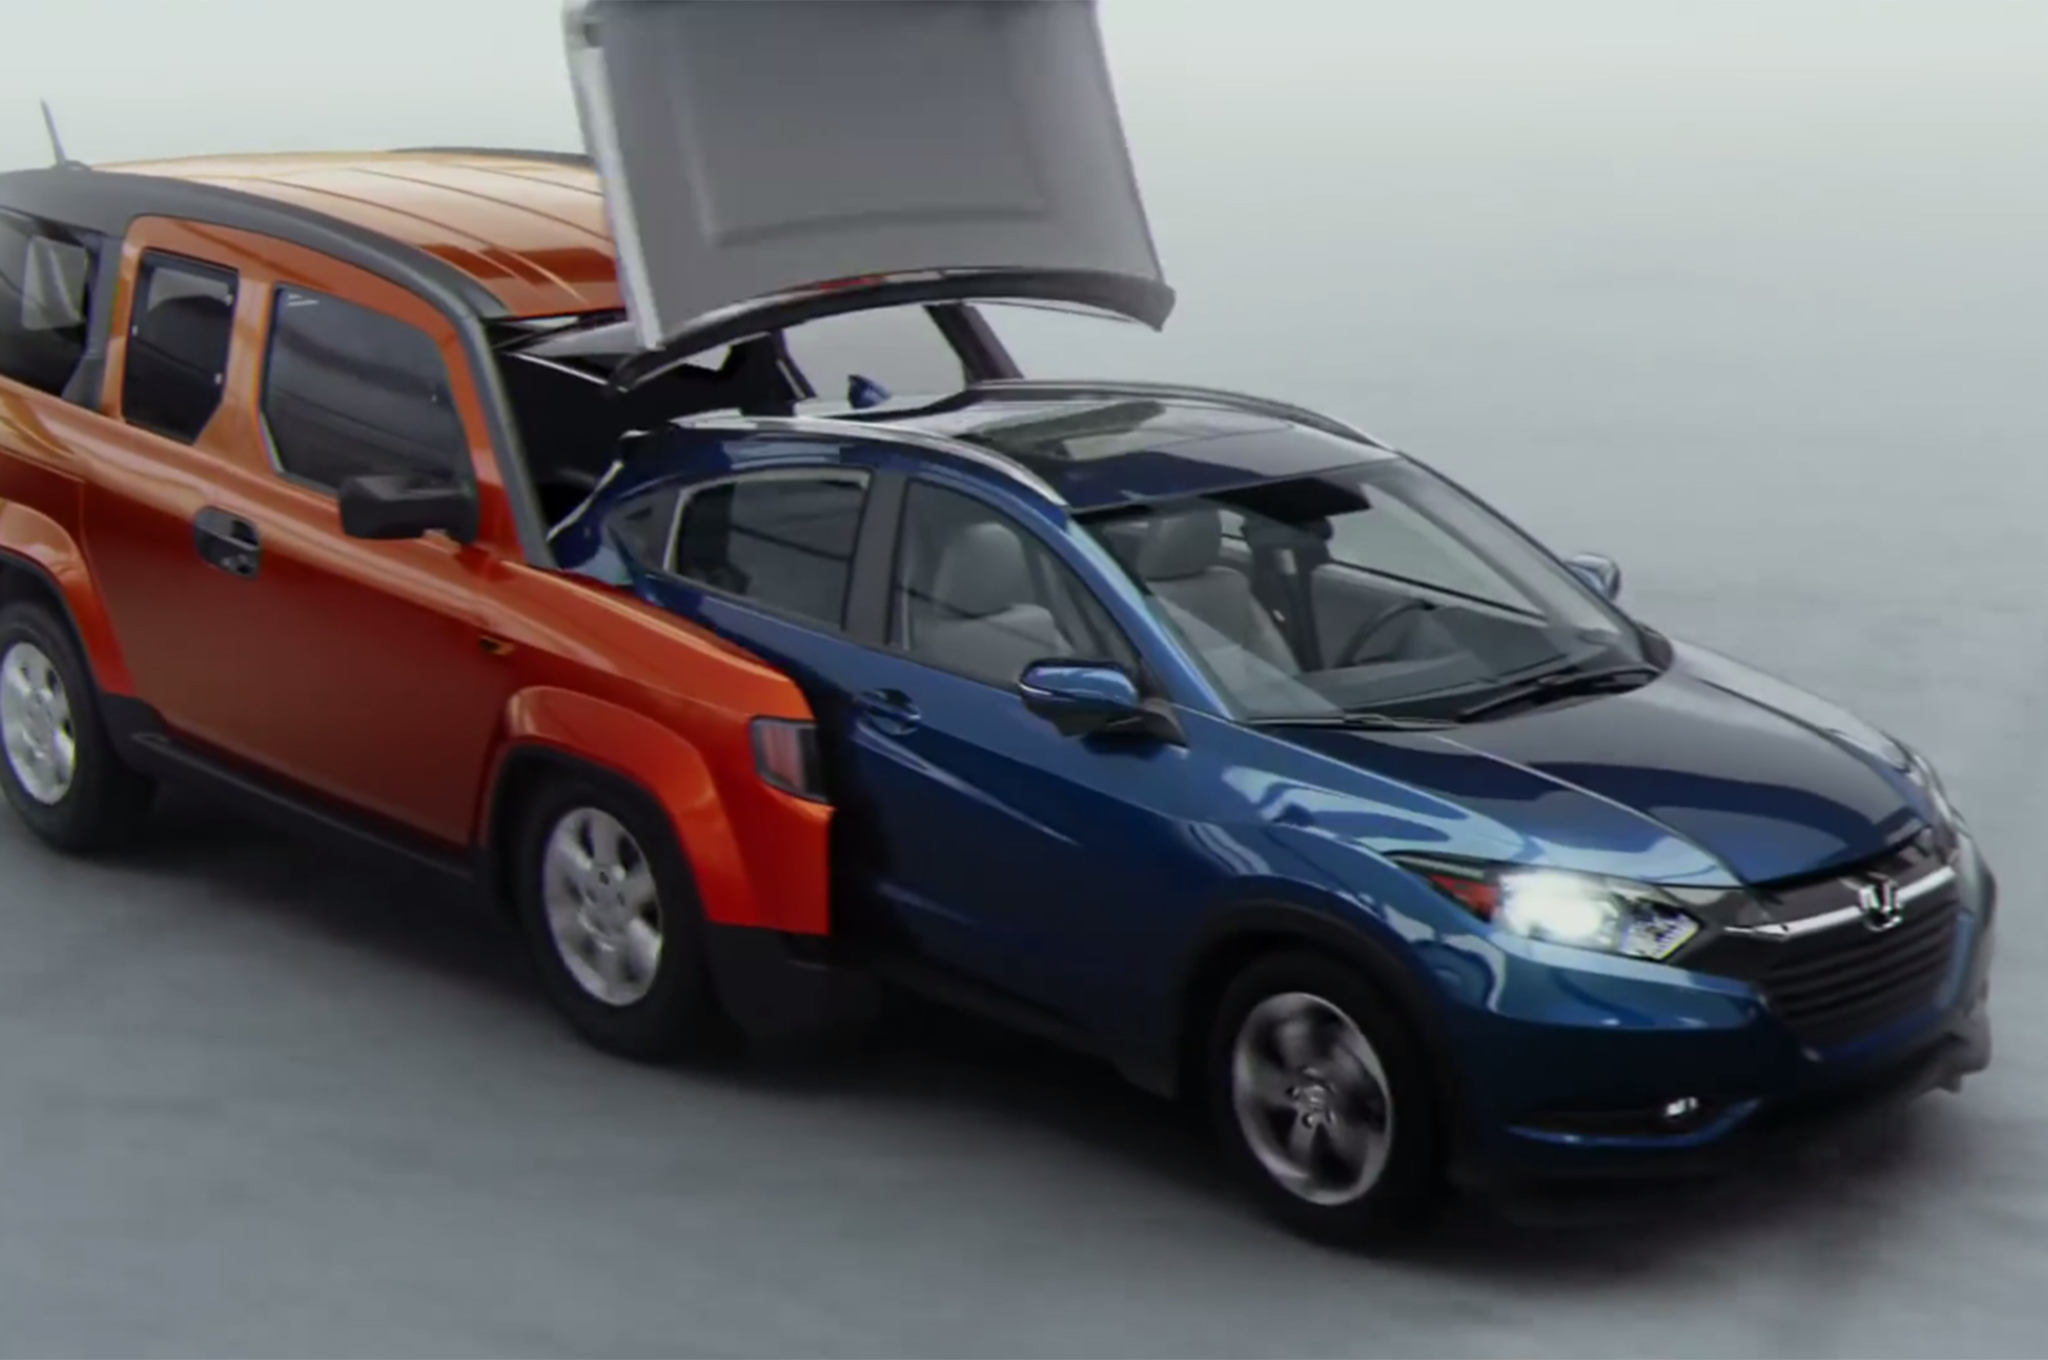 2016 honda hr v ad features 7 hondas from the past motortrend 2000 honda civic wiring diagram 2002 honda cr v wiring diagram roof [ 2048 x 1360 Pixel ]